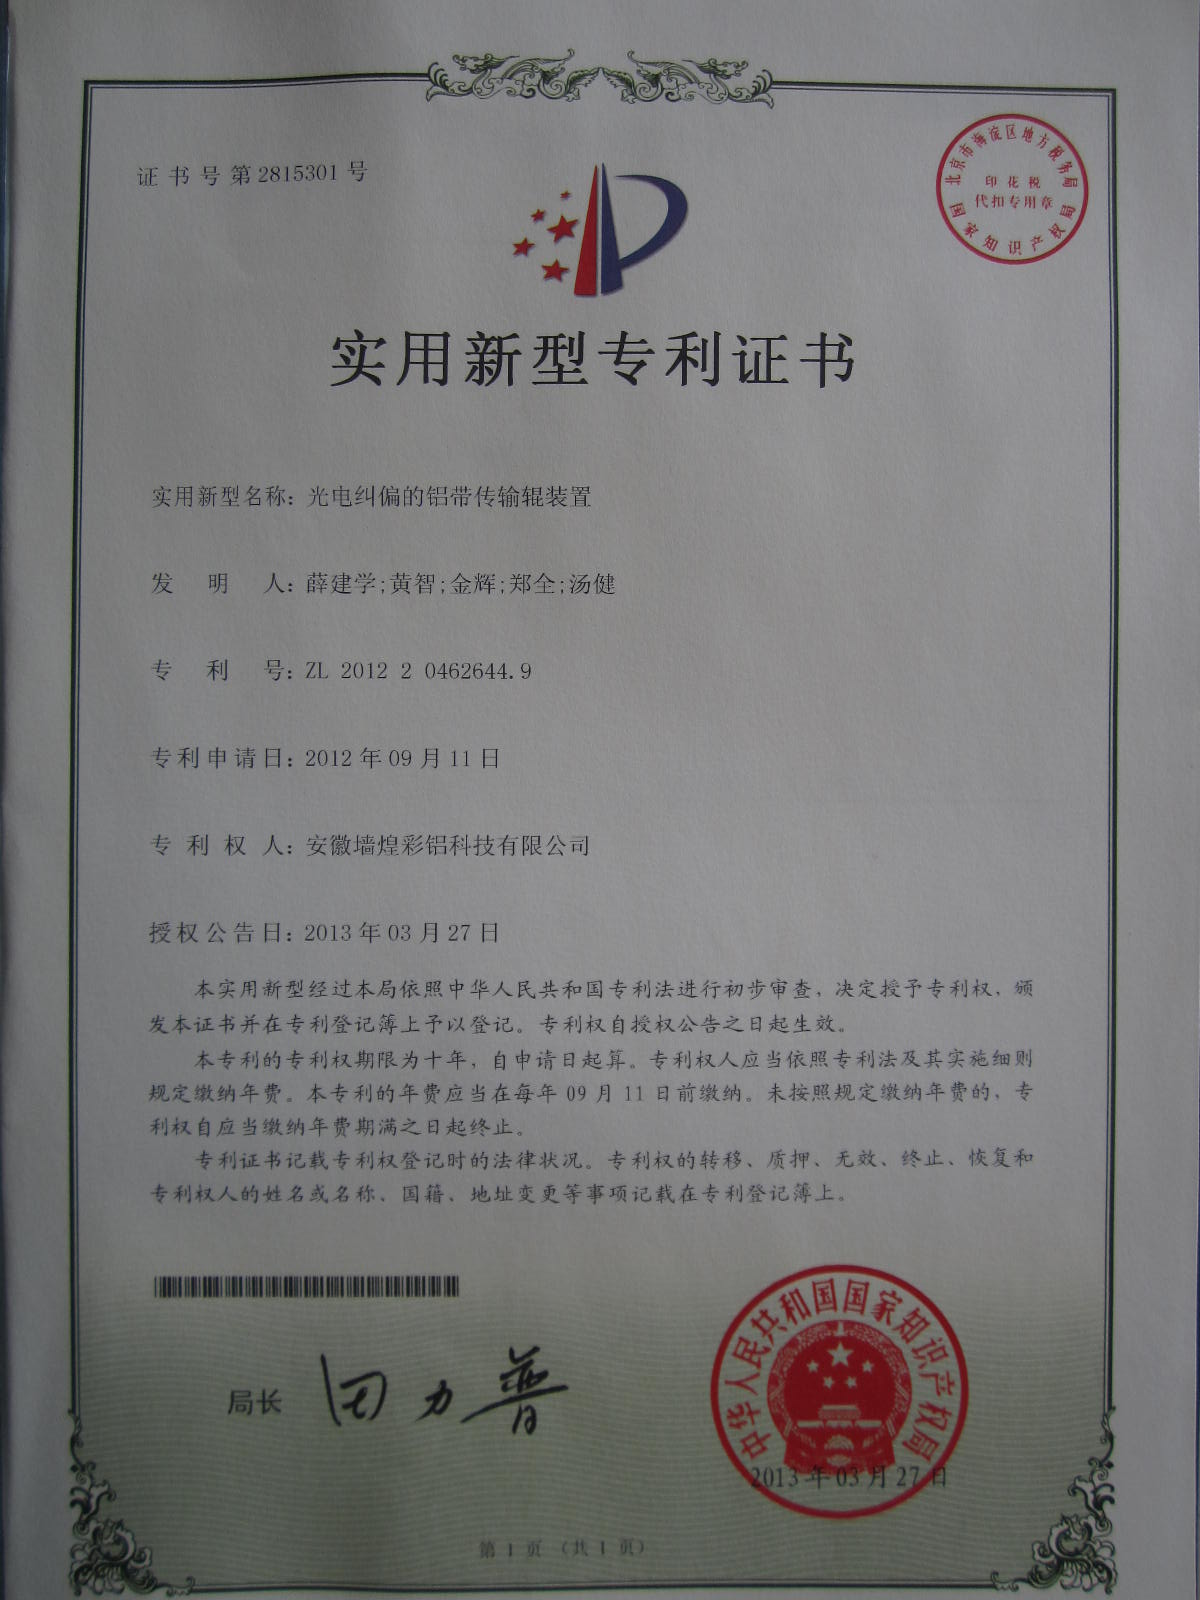 LETTER of PATENT 6